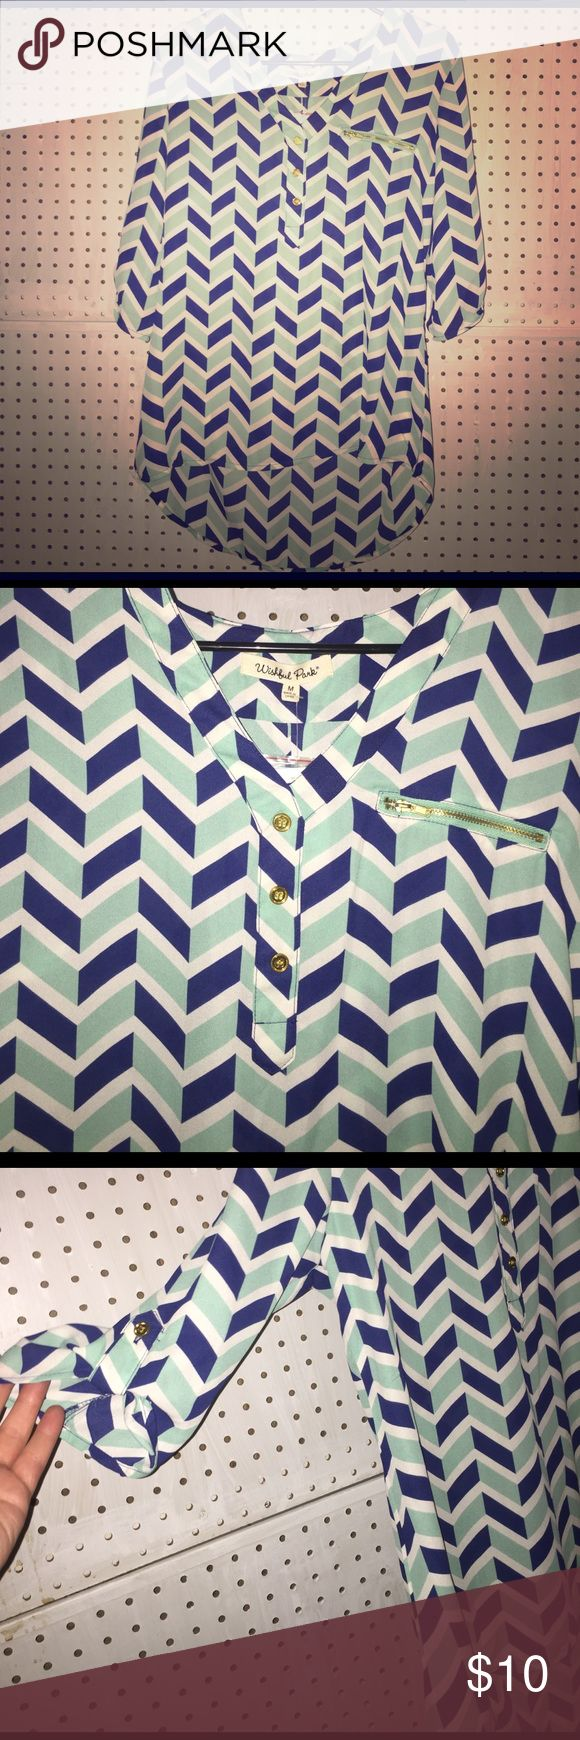 BRAND NEW Chevron shirt 3/4 sleeve w fake buttons This is a blouse by Wishful Park. It is mint green, Royal blue, and white chevron. It has 3 fake gold buttons coming down, one on each sleeve, and a fake gold zipper on the breast. Shorter in the front, longer in the back. Wishful Park Tops Blouses